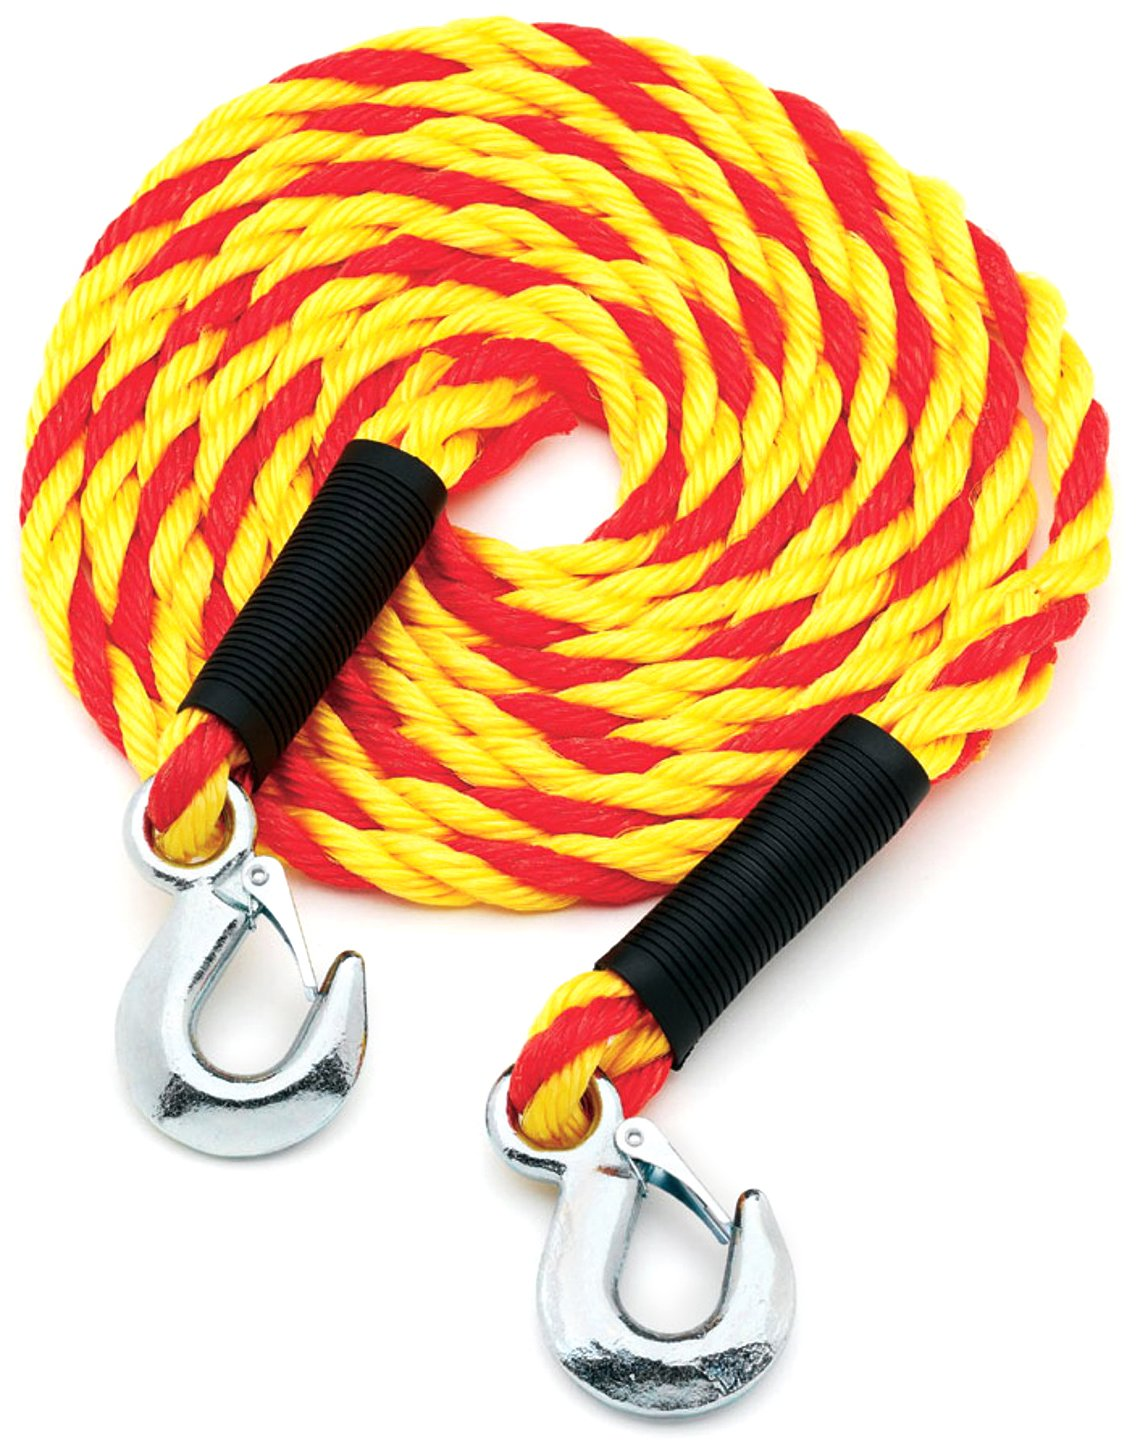 1 piece Highland 9161500 15 Orange and Yellow Tow Rope